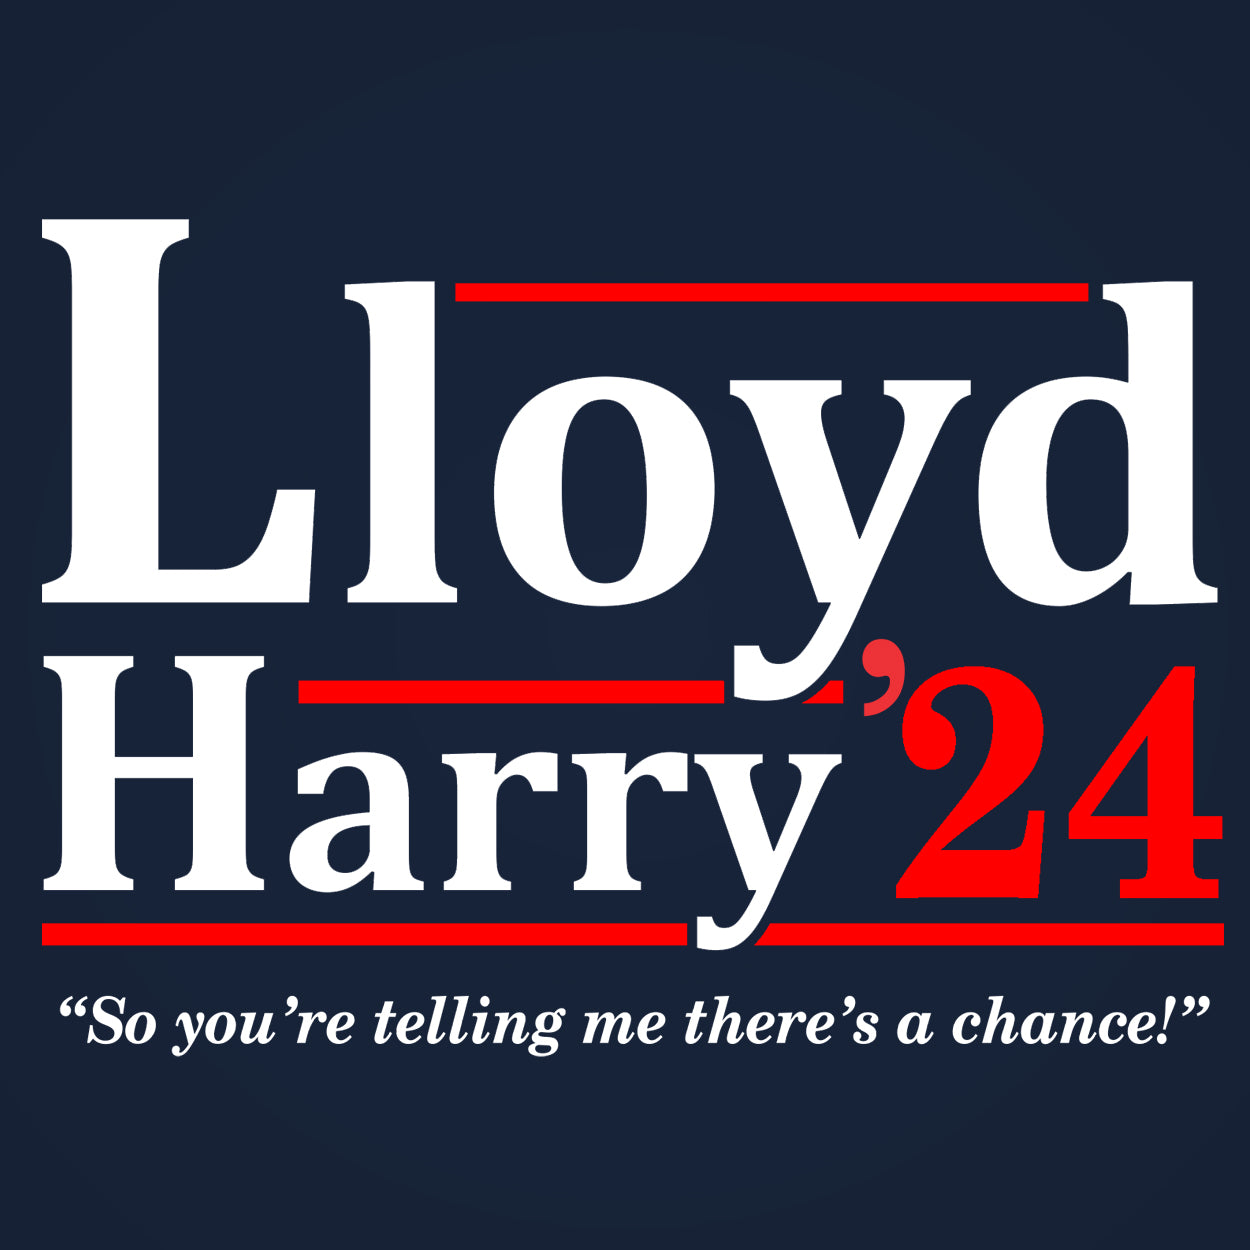 Lloyd and Harry 2024 Election